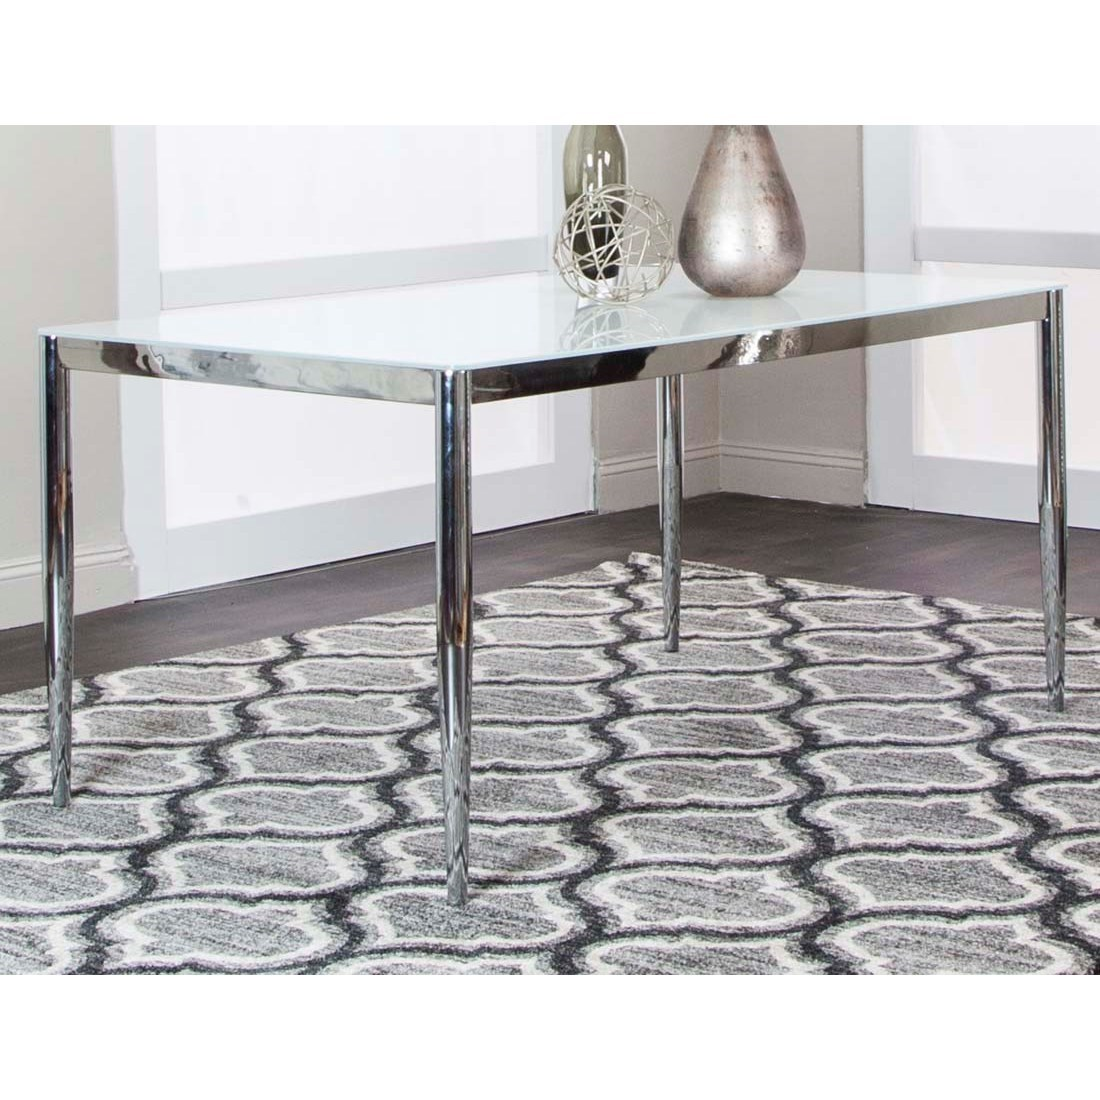 Atom Dining Table by Cramco, Inc at Value City Furniture